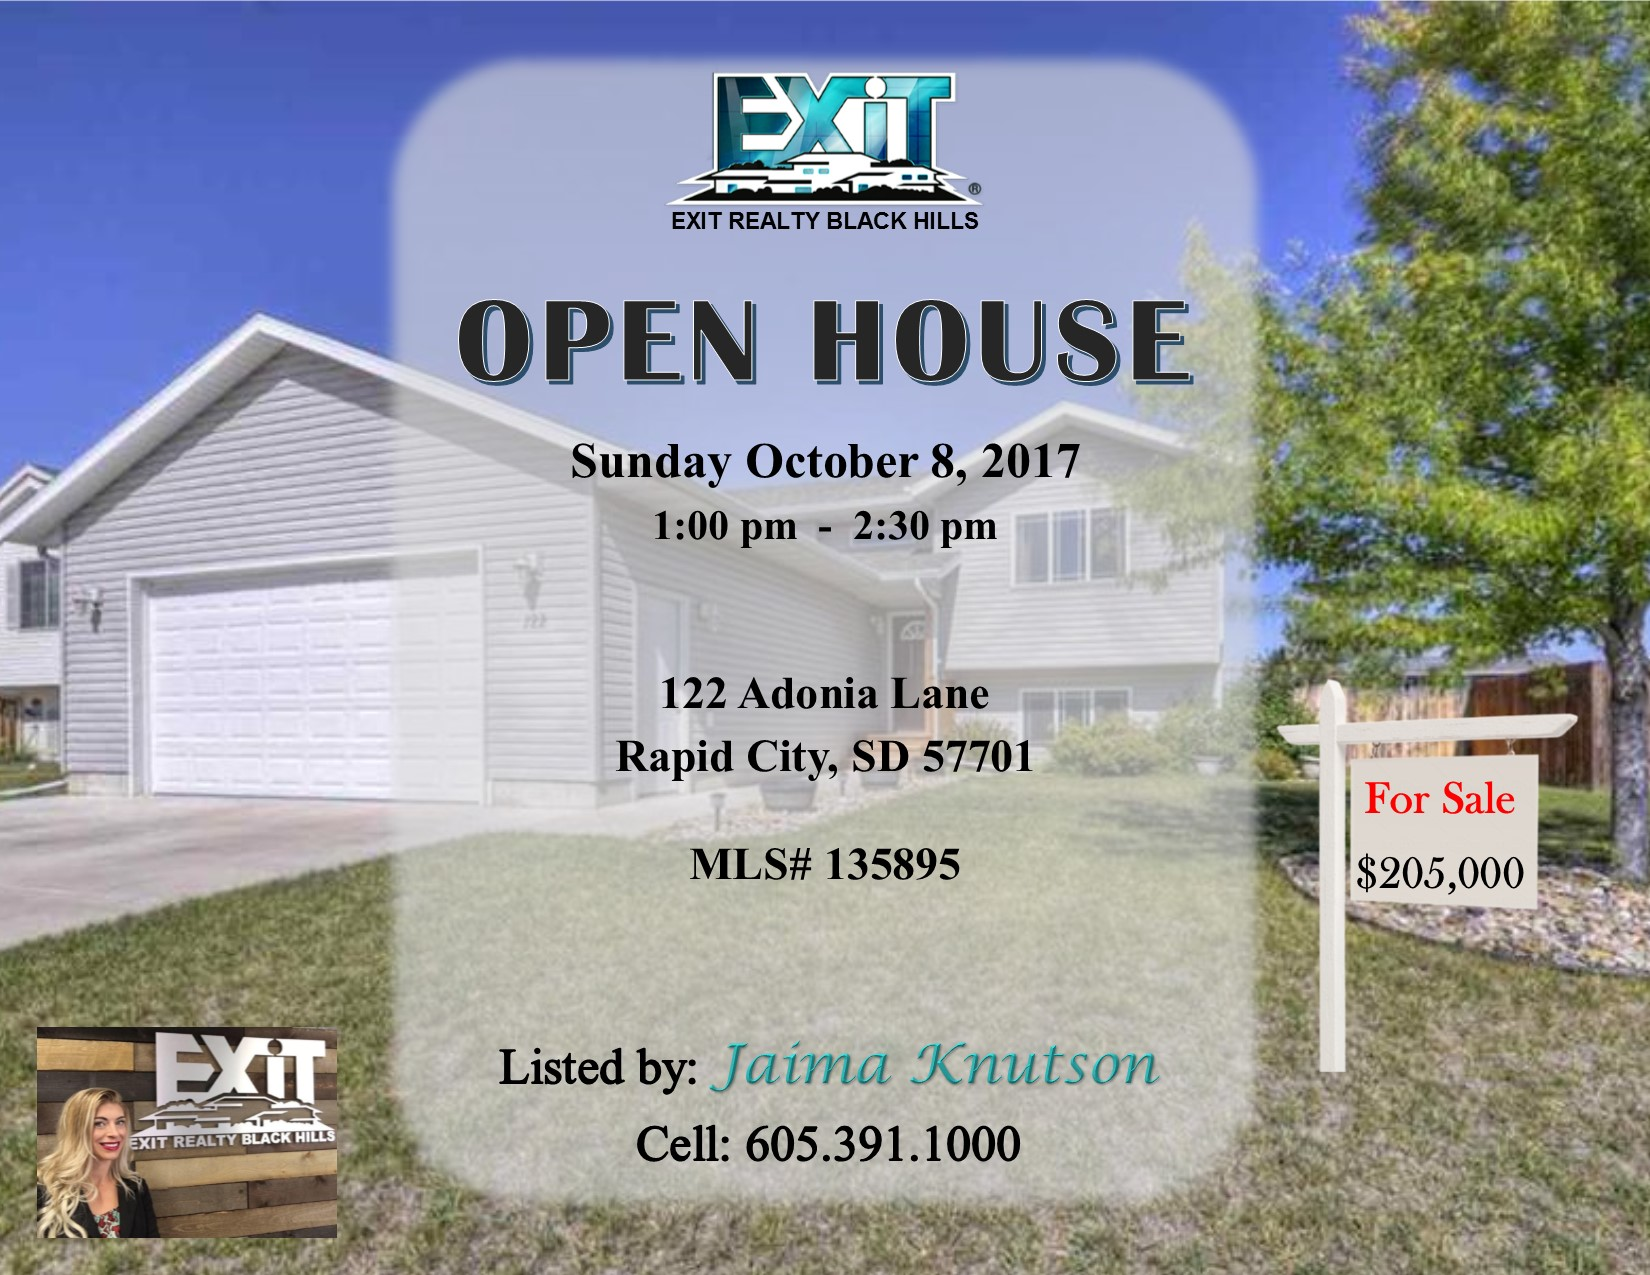 Open House Sunday October 8, 2017